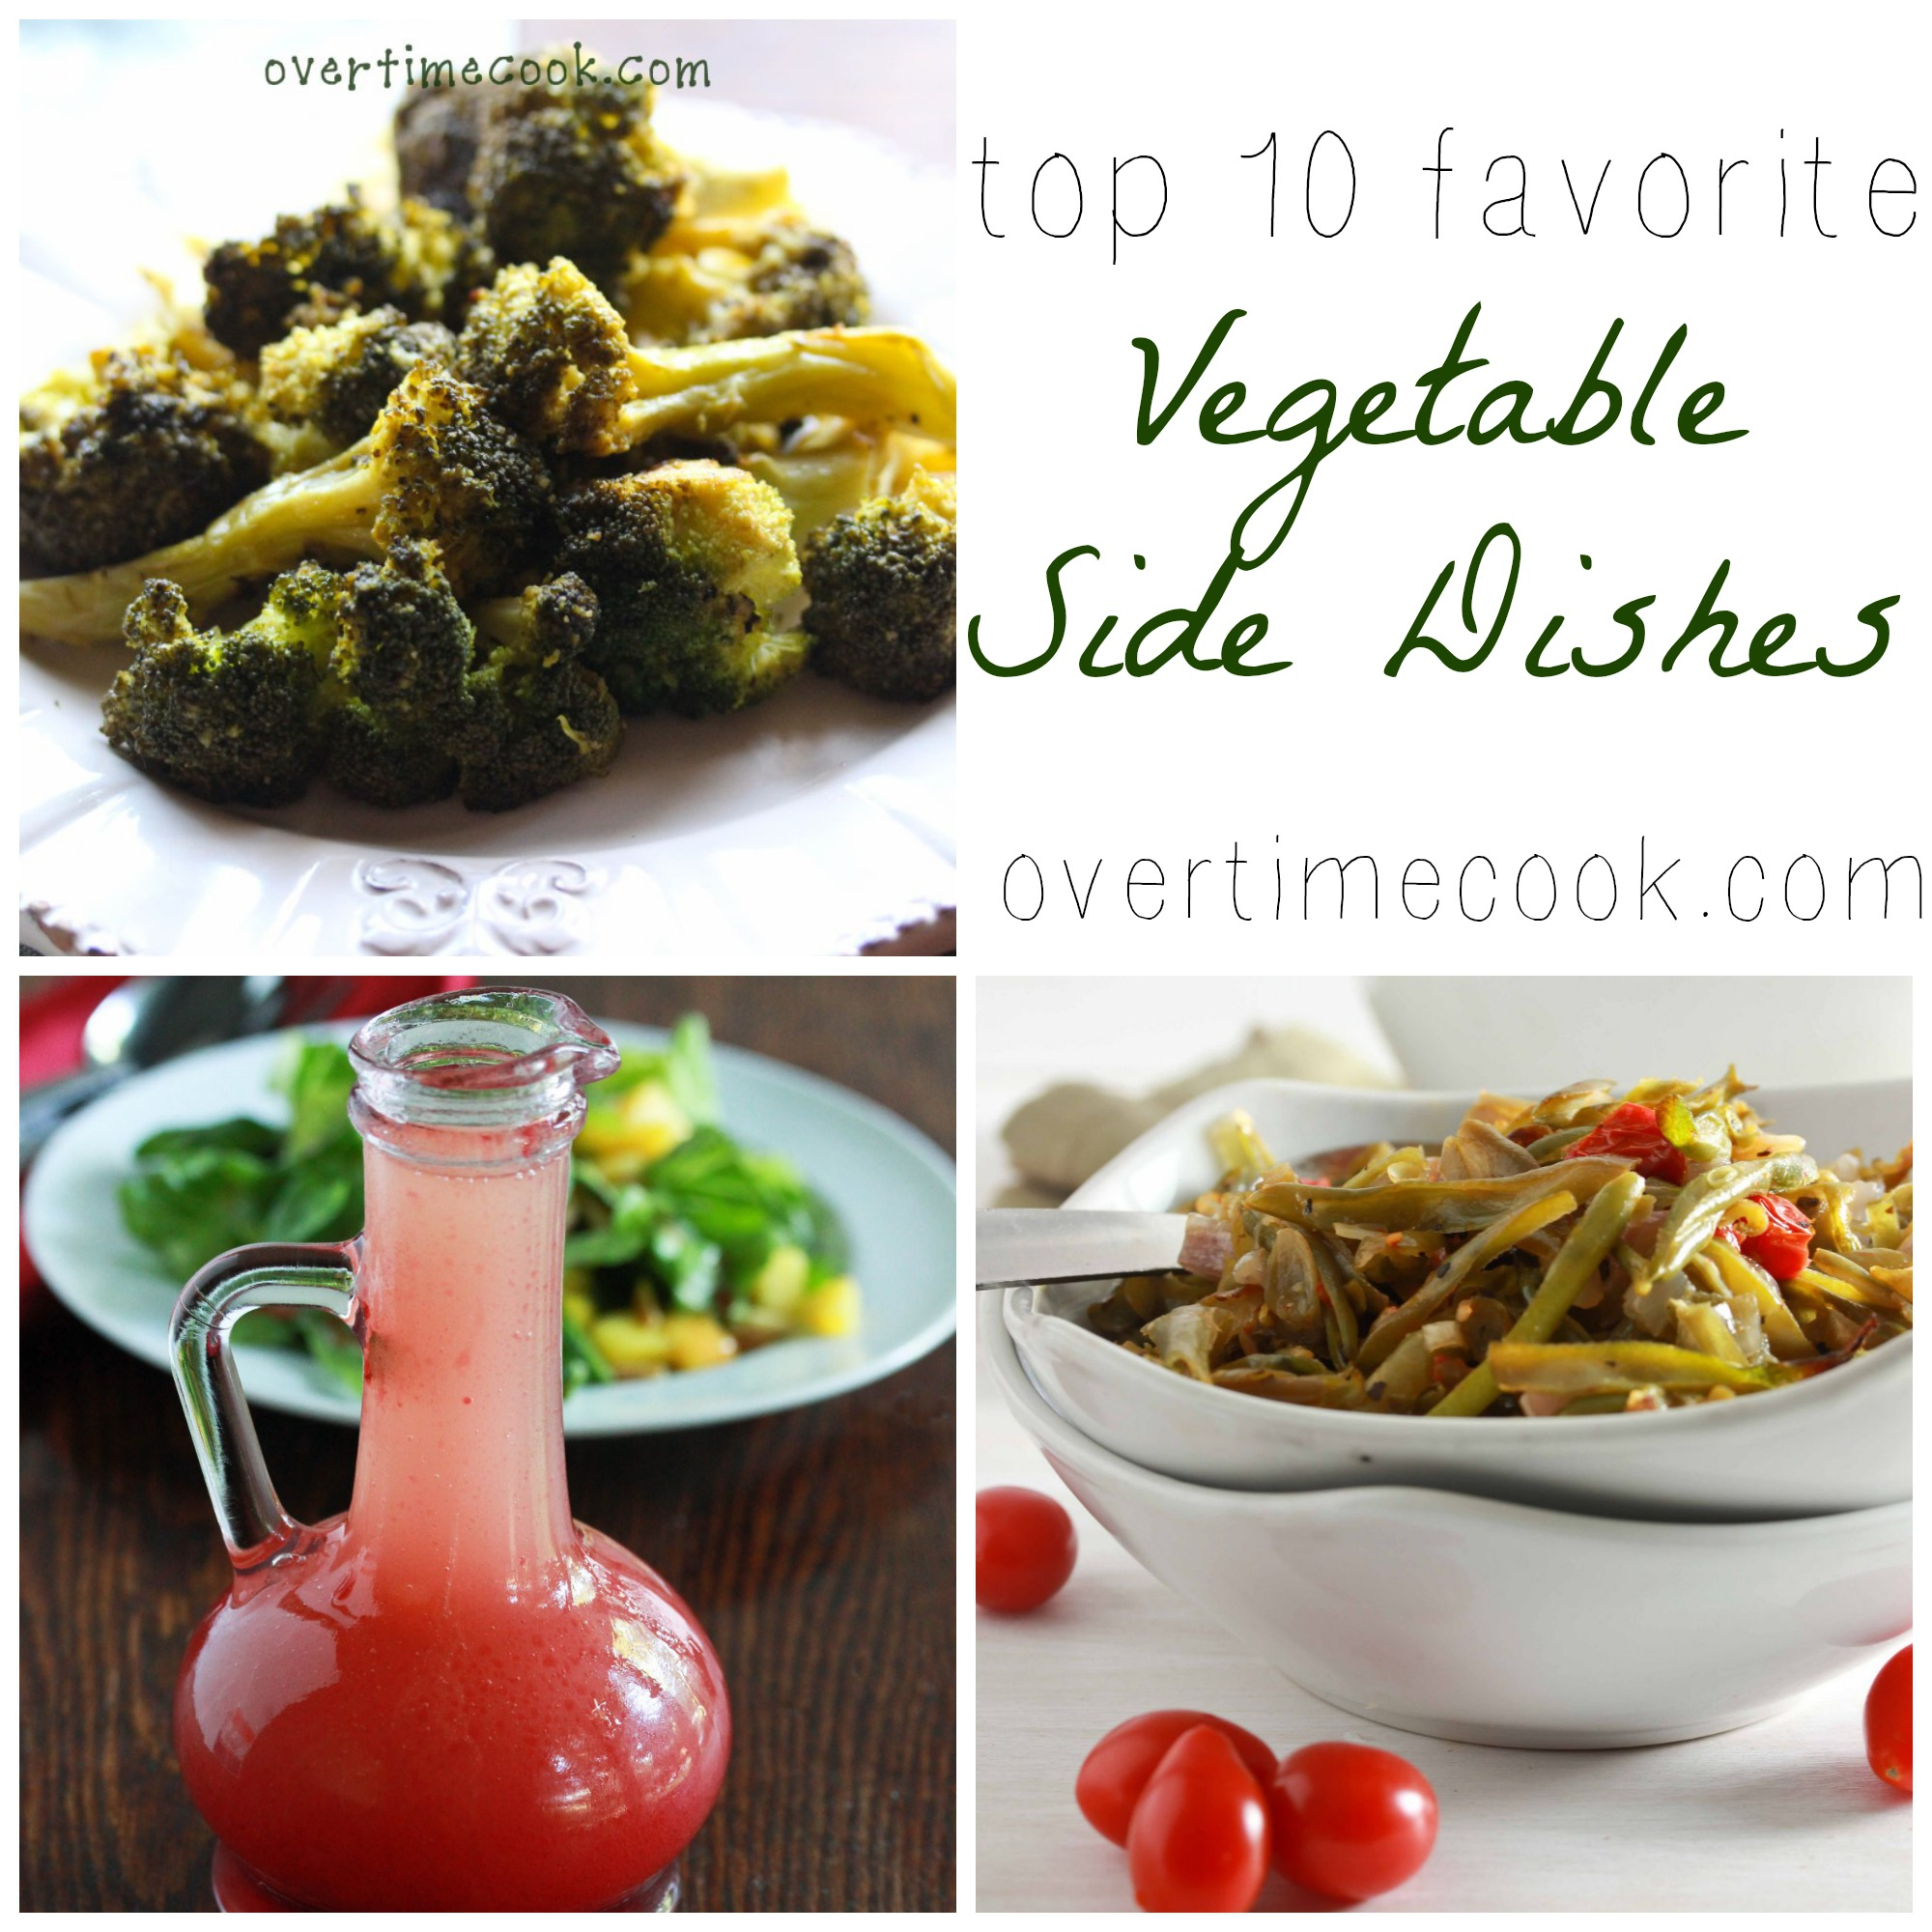 top 10 favorite Veggetable Dishes on overtime cook